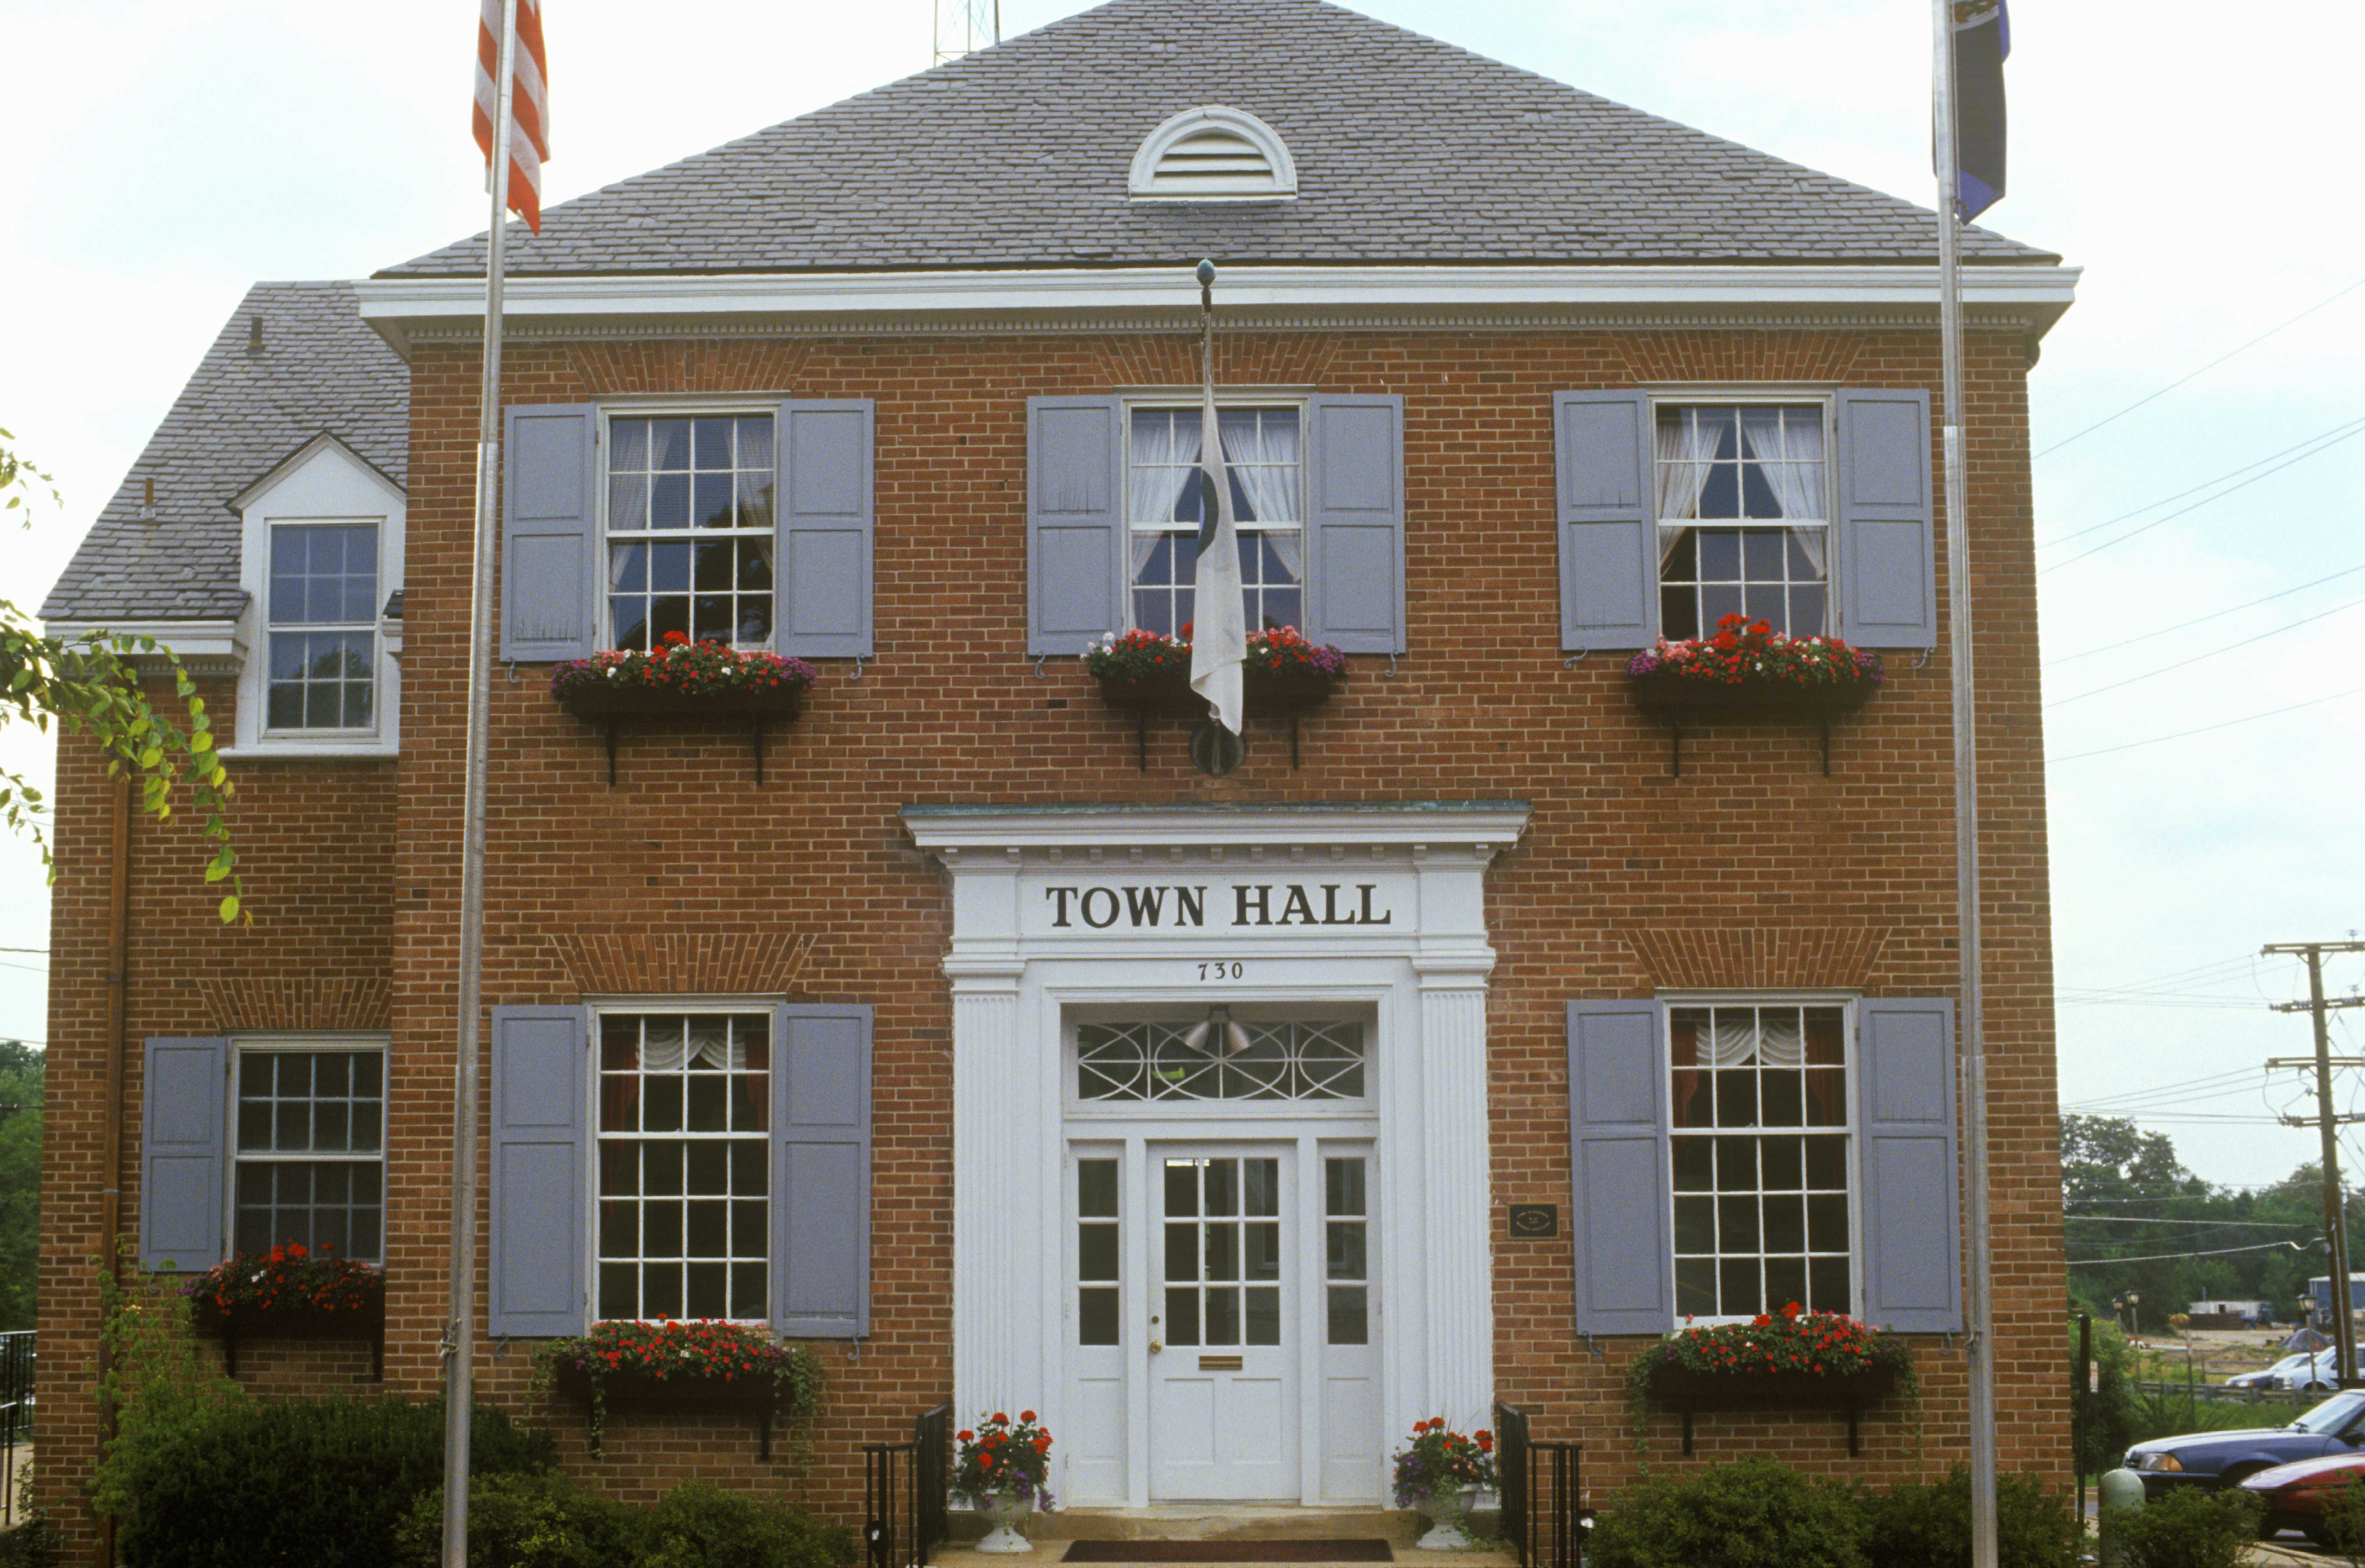 Town Hall Building in Herndon